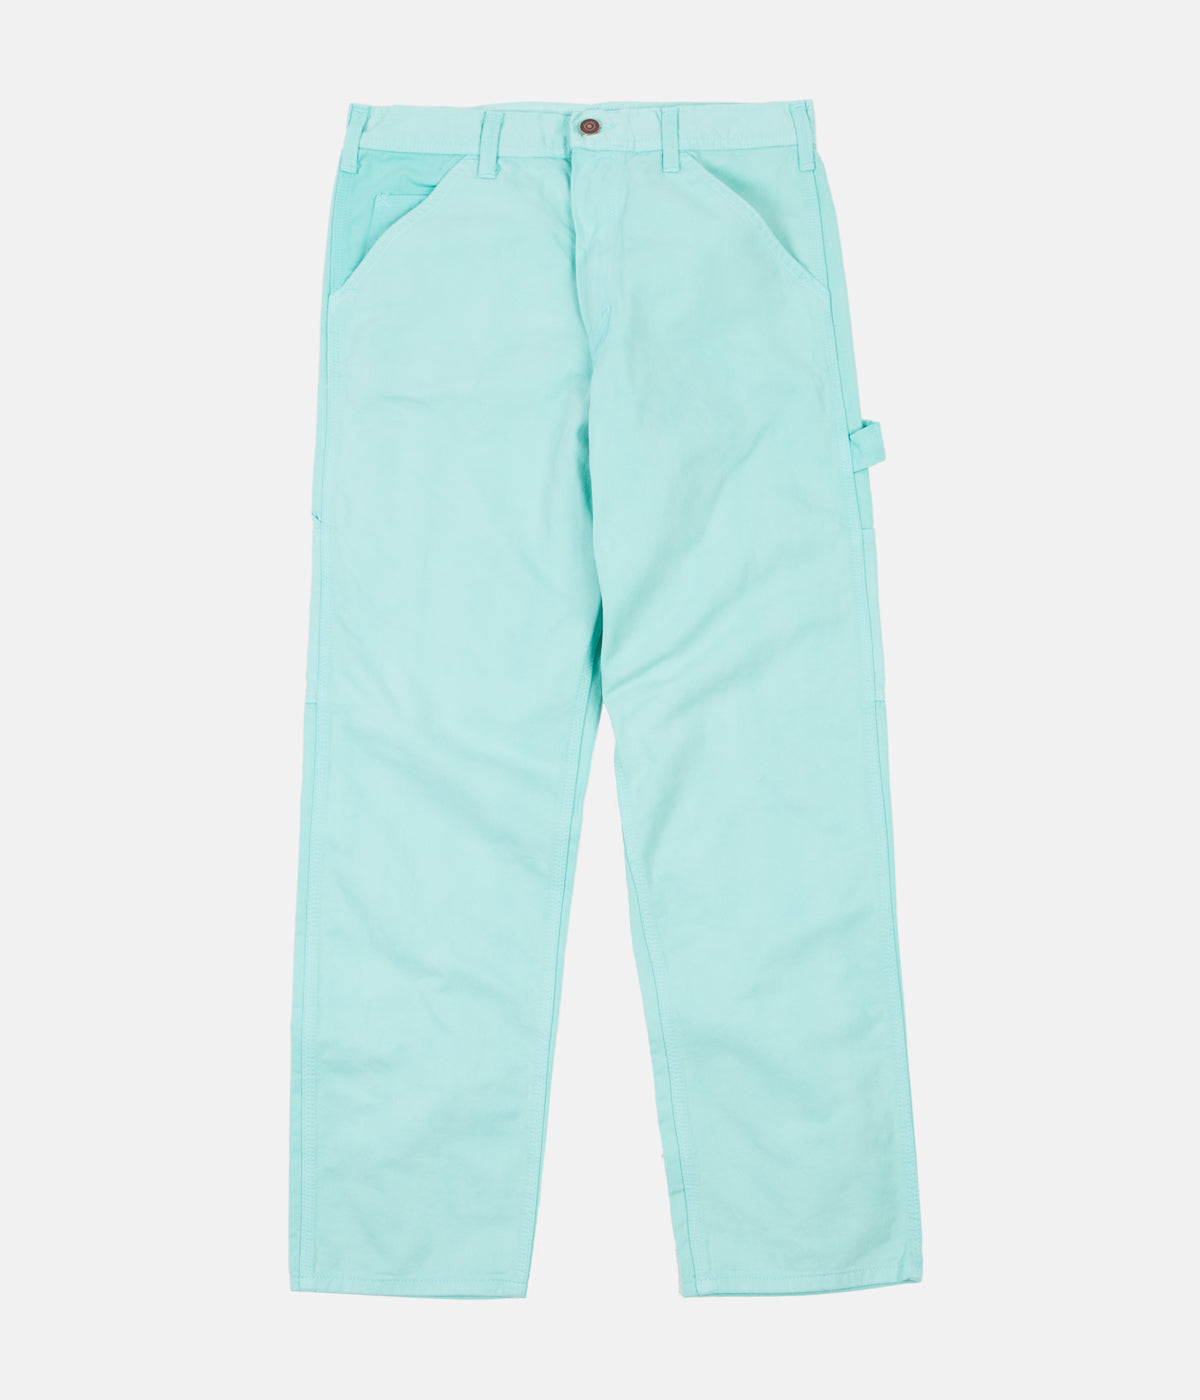 Stan Ray Single Knee Painter Pant Trousers - Turquoise Overdye